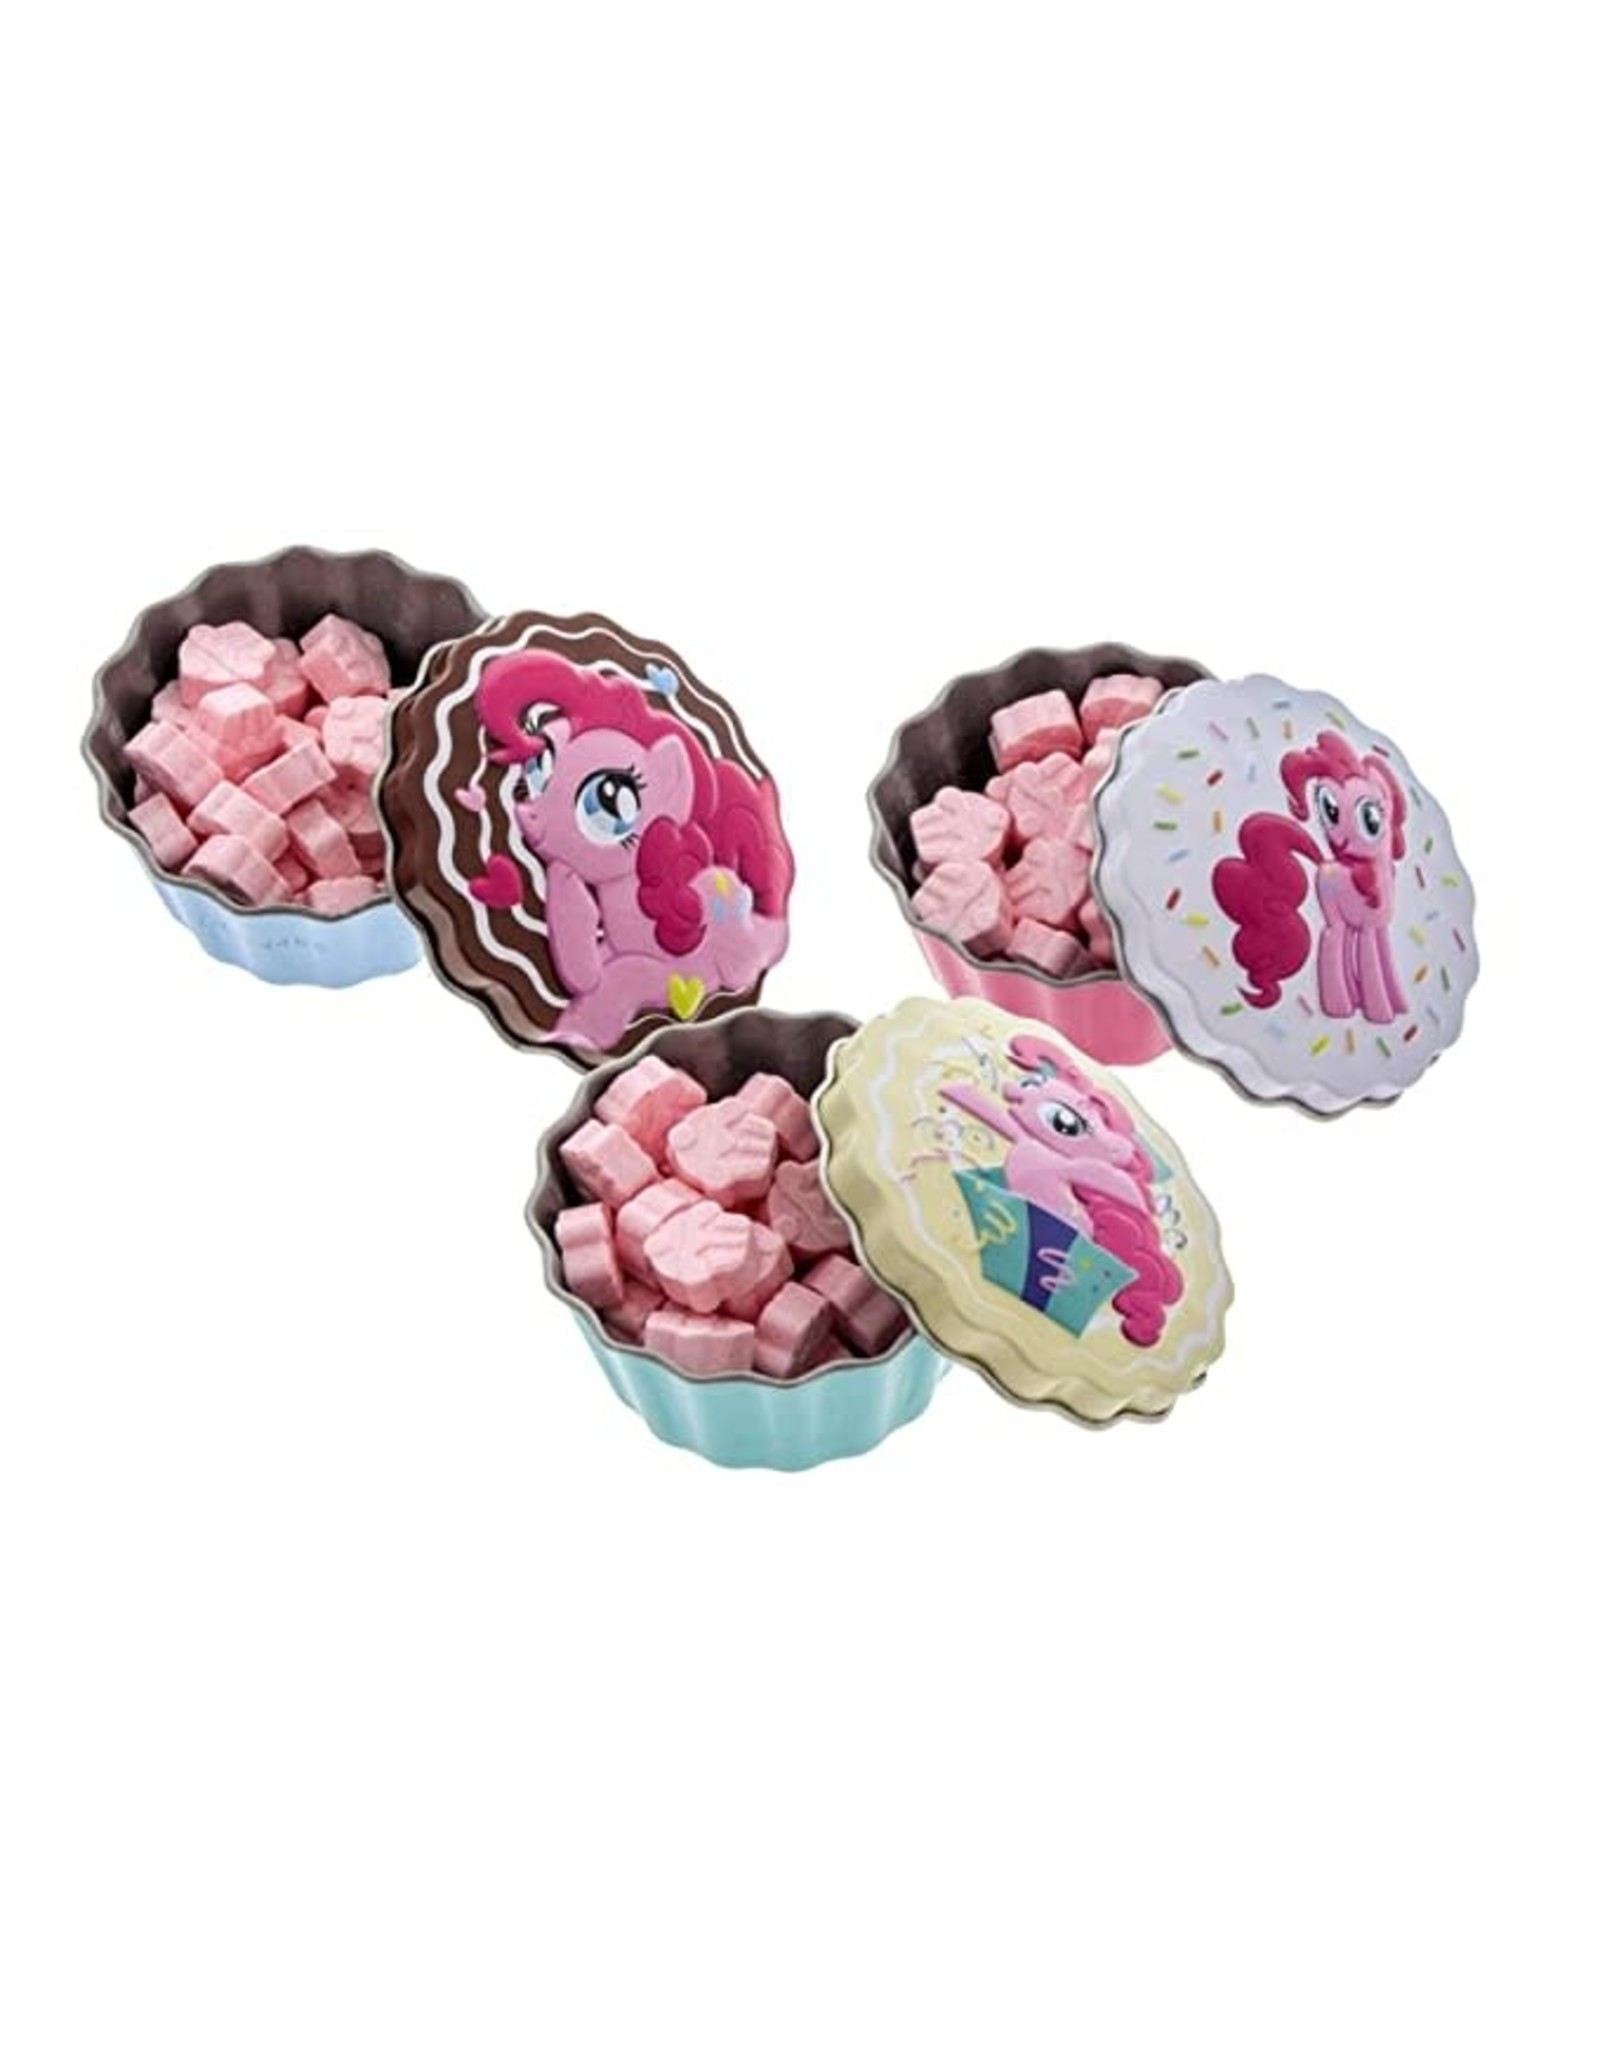 My Little Pony - Pinkie Pie's Party Cupcakes - Frosting Flavored Cupcake Candies - 22g